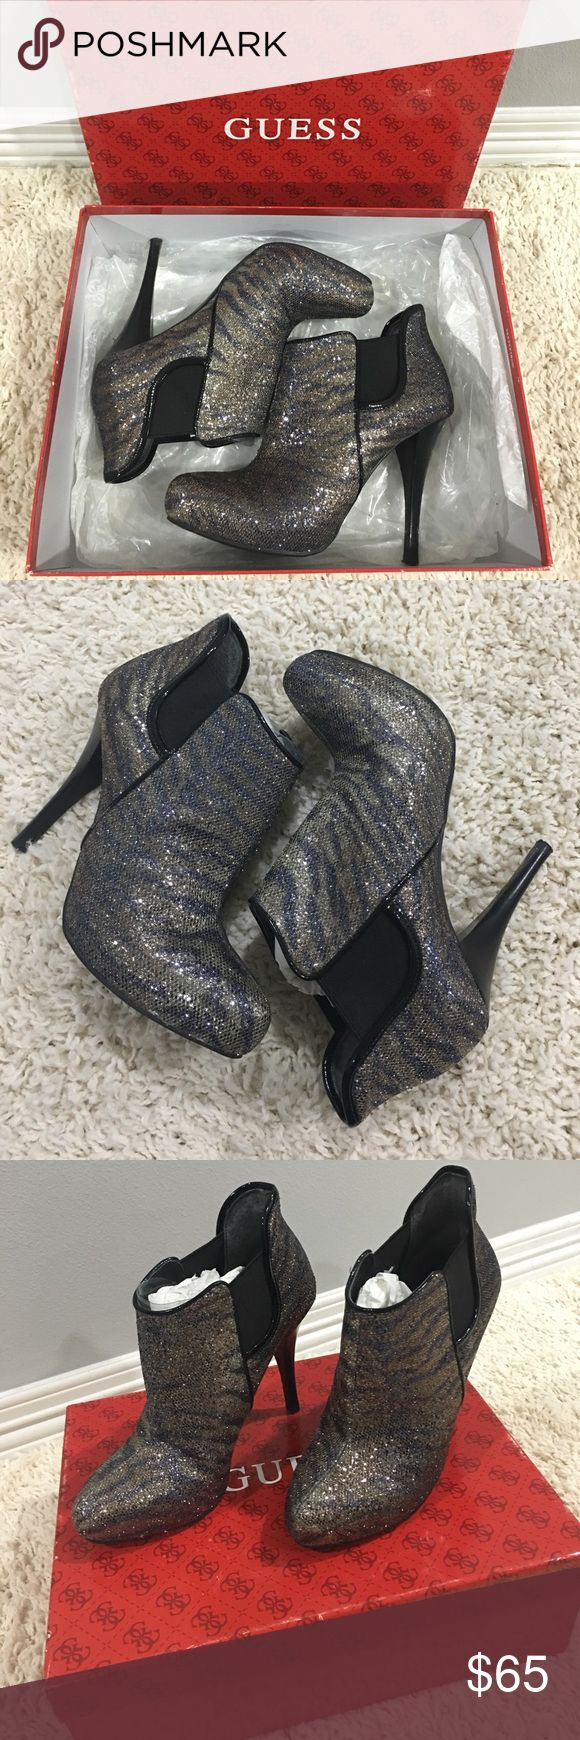 💙💜Guess Zebra striped ankle booties💜💙 🖤💜💙Like new✨, used only once for a New Years get together.✨Great condition 👌🏼💙💜🖤 They're super cute but the 3 1/2 inch heel is a little too high for me 💜🖤💙 Guess Shoes Ankle Boots & Booties